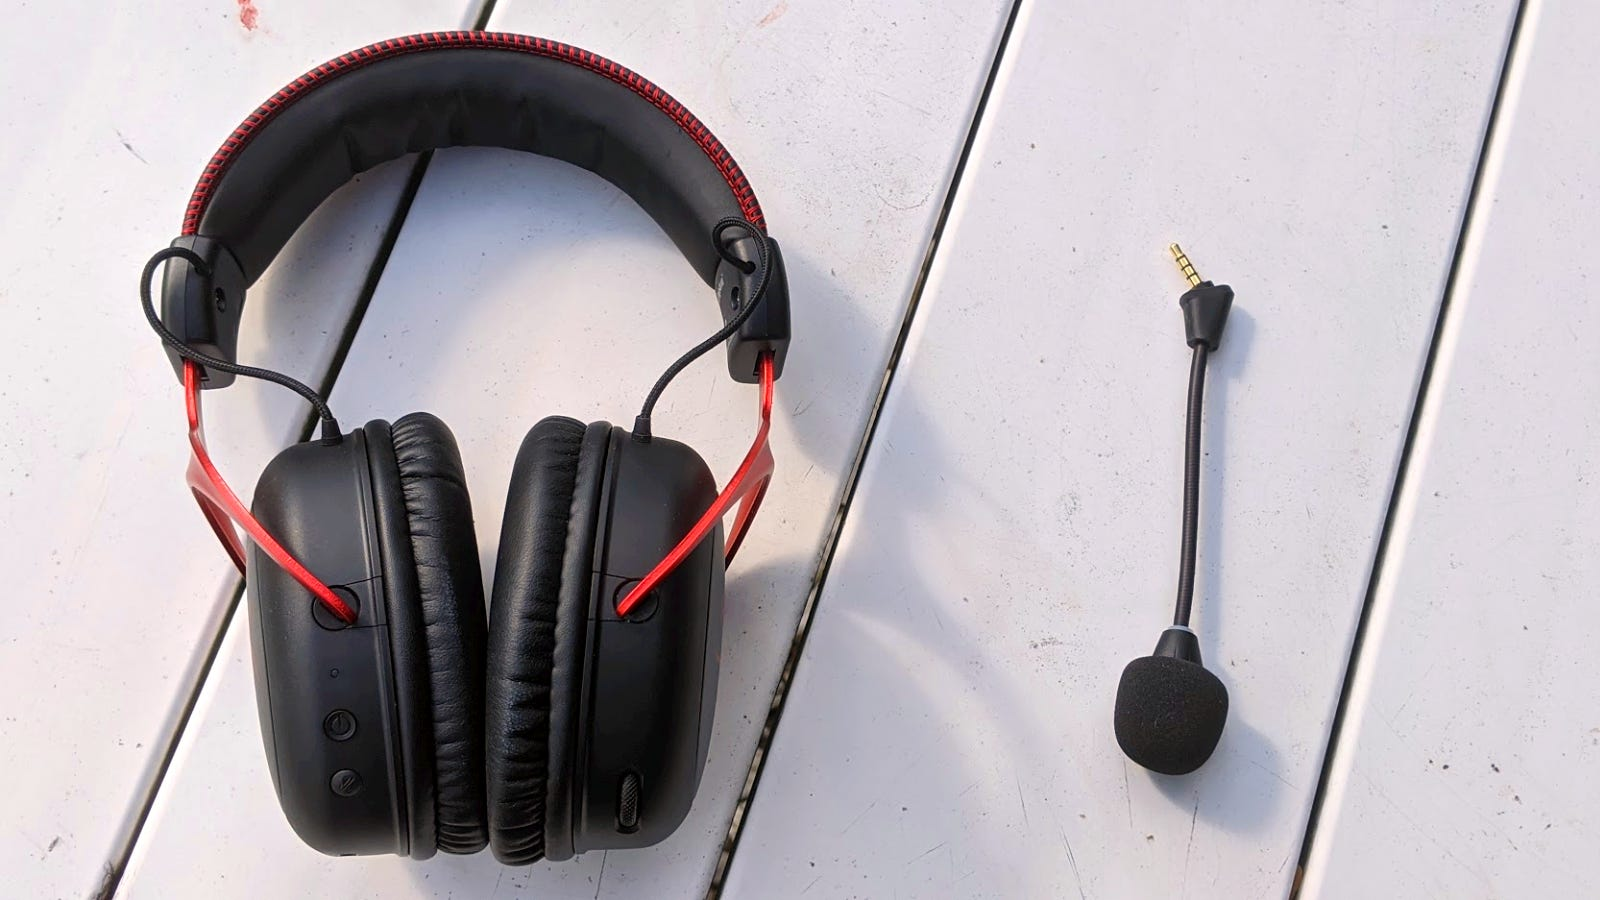 HyperX Cloud II Wireless and detached microphone on a table